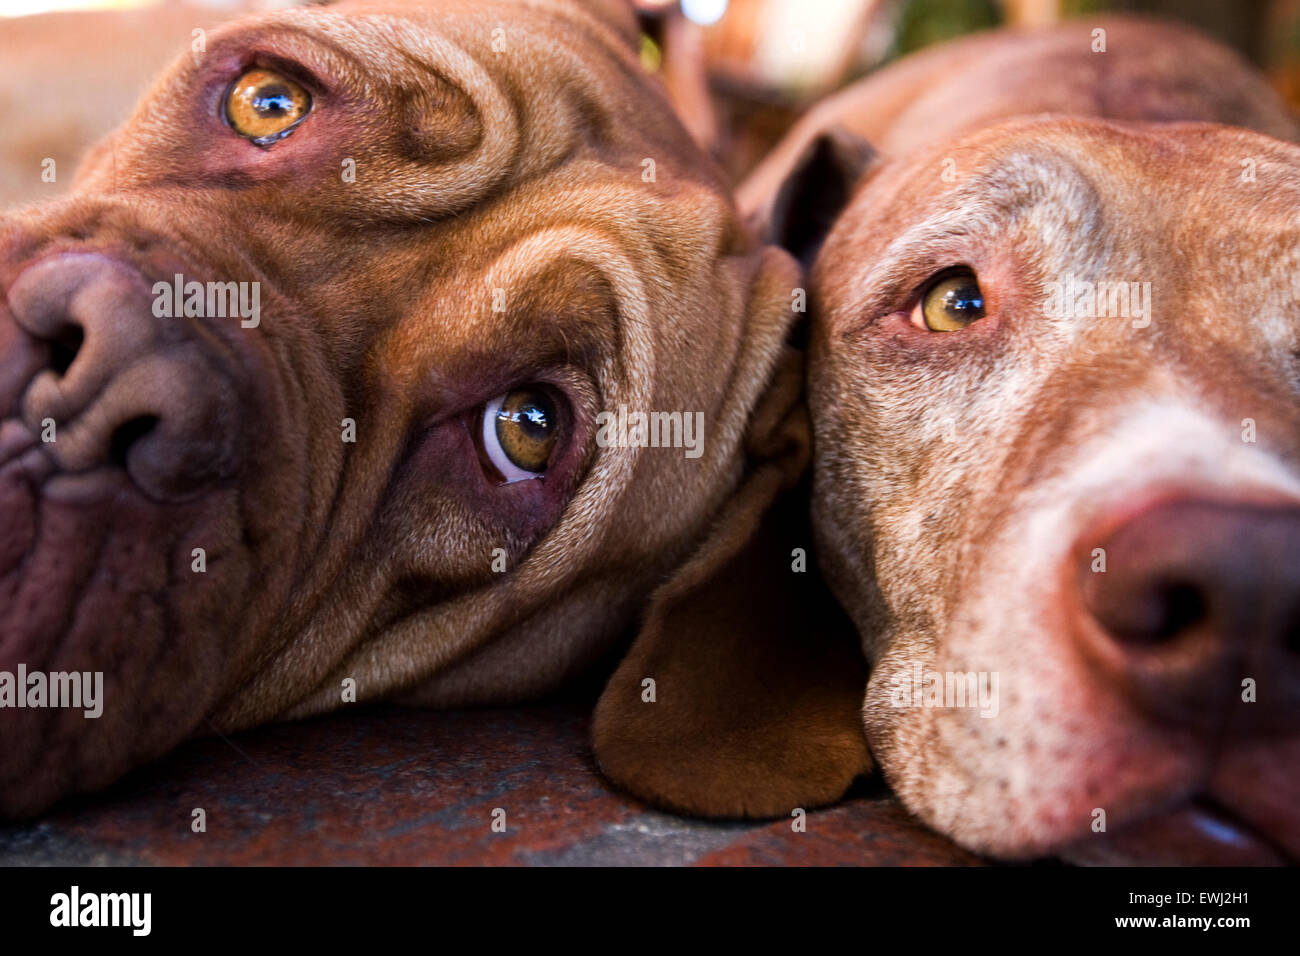 Close up of two very expressive dogs faces laying down next to each other - Stock Image